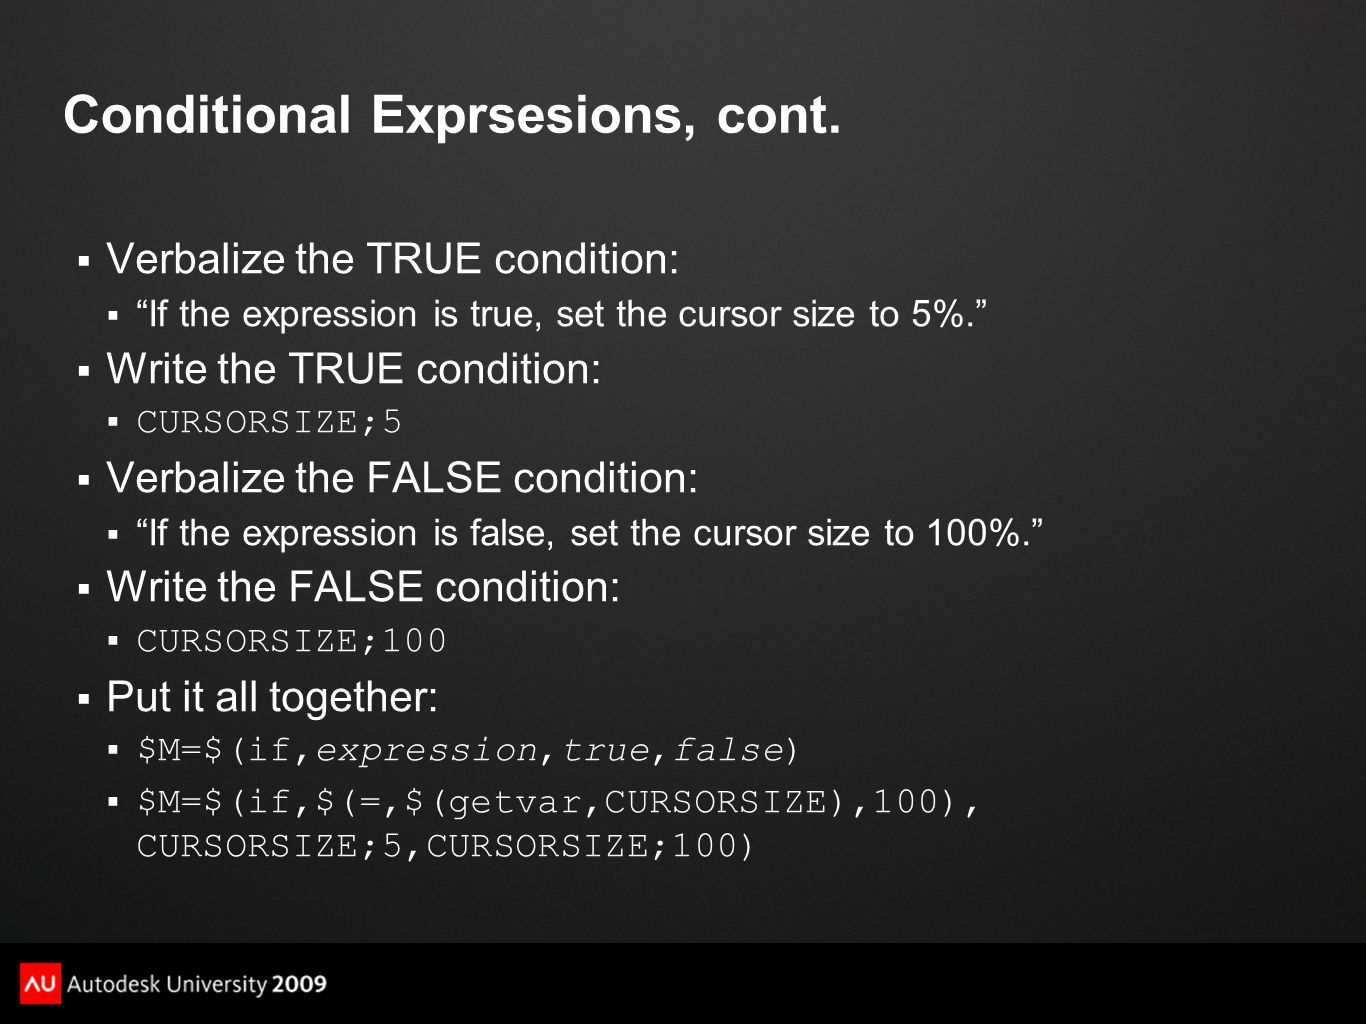 "Conditional Exprsesions, cont.  Verbalize the TRUE condition:  ""If the expression is true, set the cursor size to 5%.""  Write the TRUE condition: "